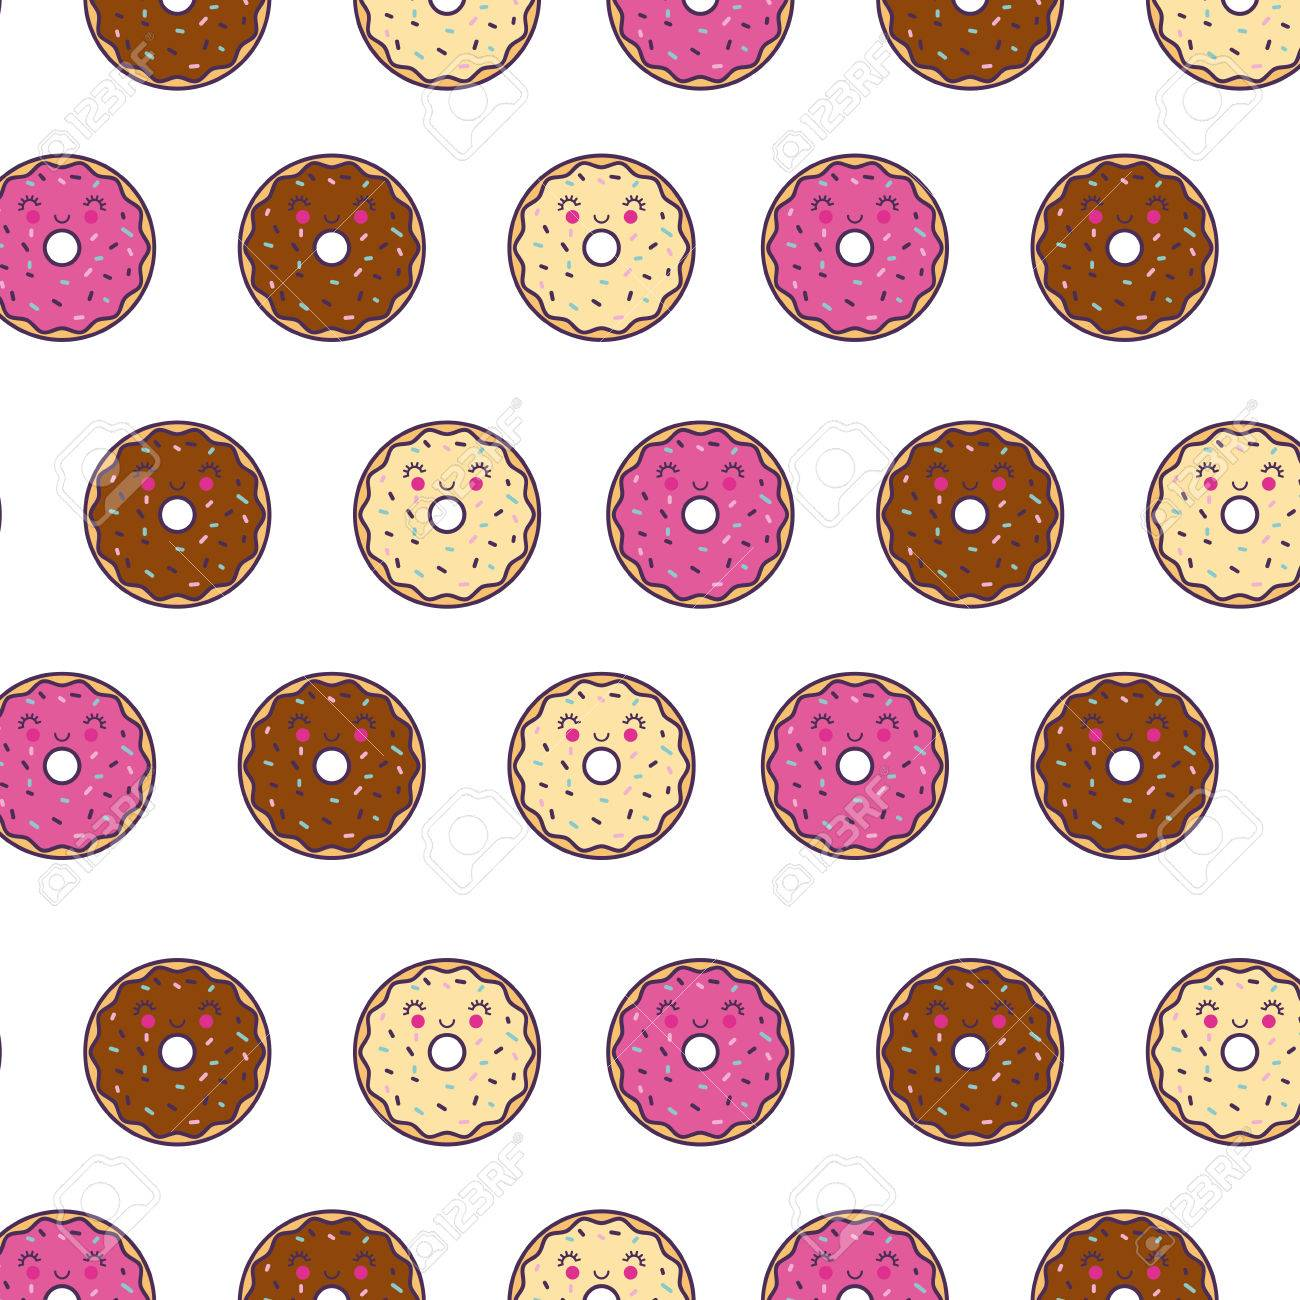 happy donuts girly wallpaper or background image vector illustration design stock vector 77705637